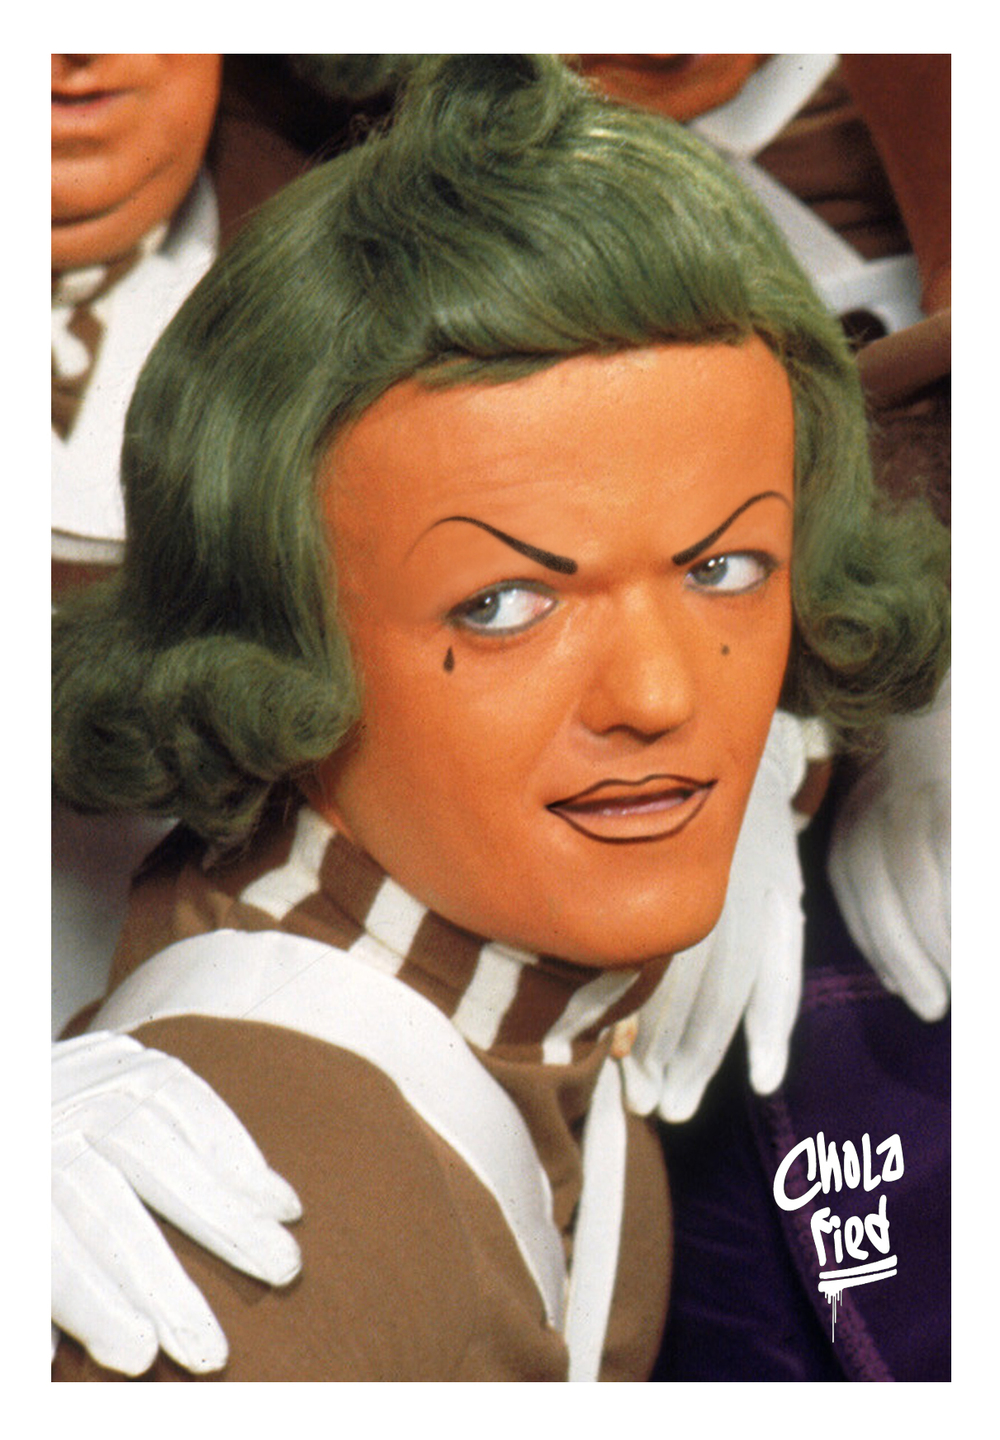 oompa-loompa-doompety-doo i've got another chola for you